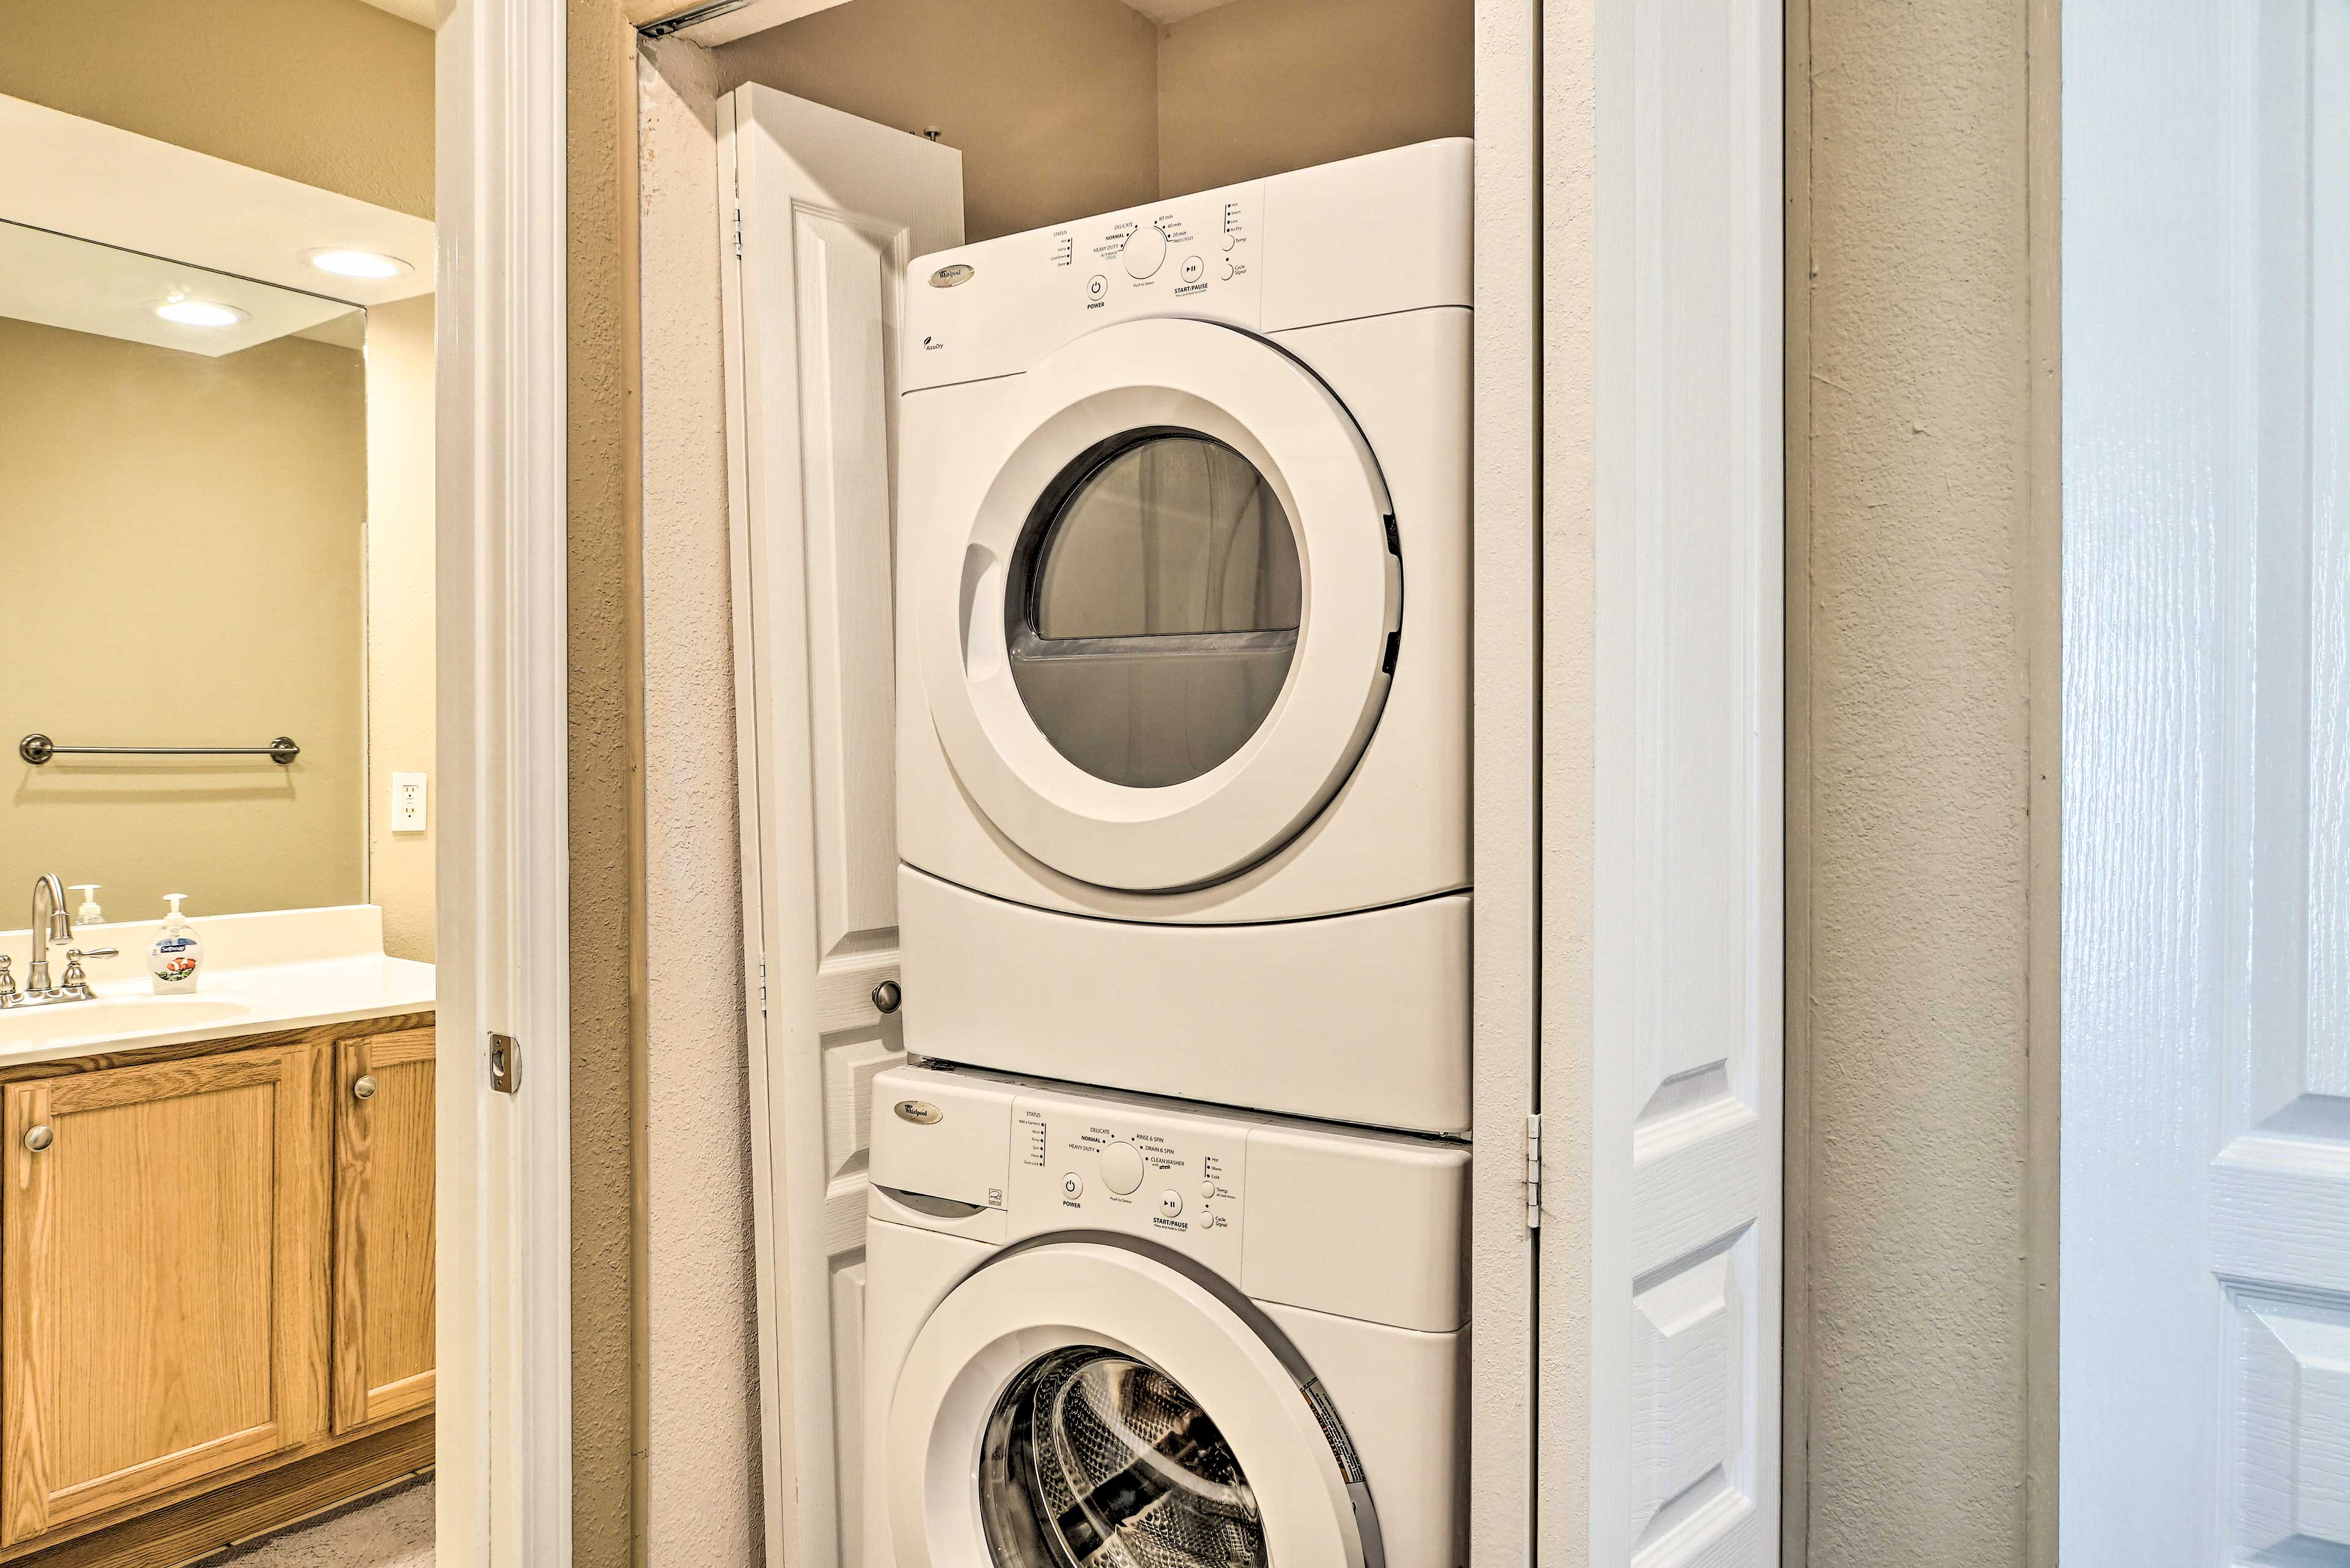 A washer and dryer are provided for your convenience.